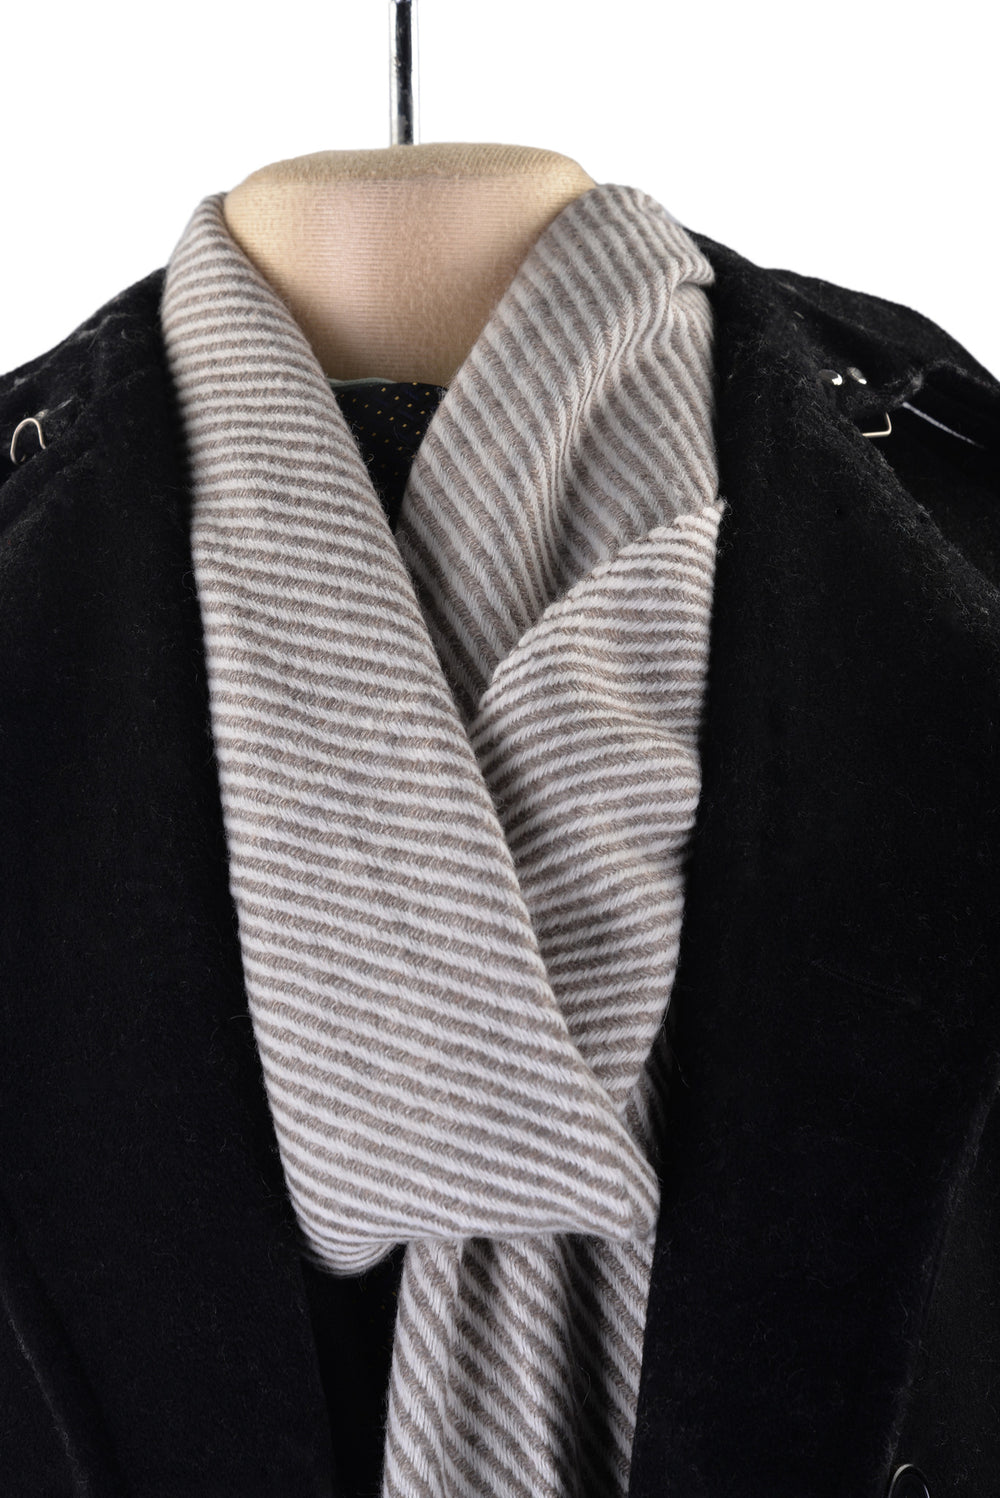 Cashmere Wool Scarf Grey Cream Diagonal Stripes (3970833924)